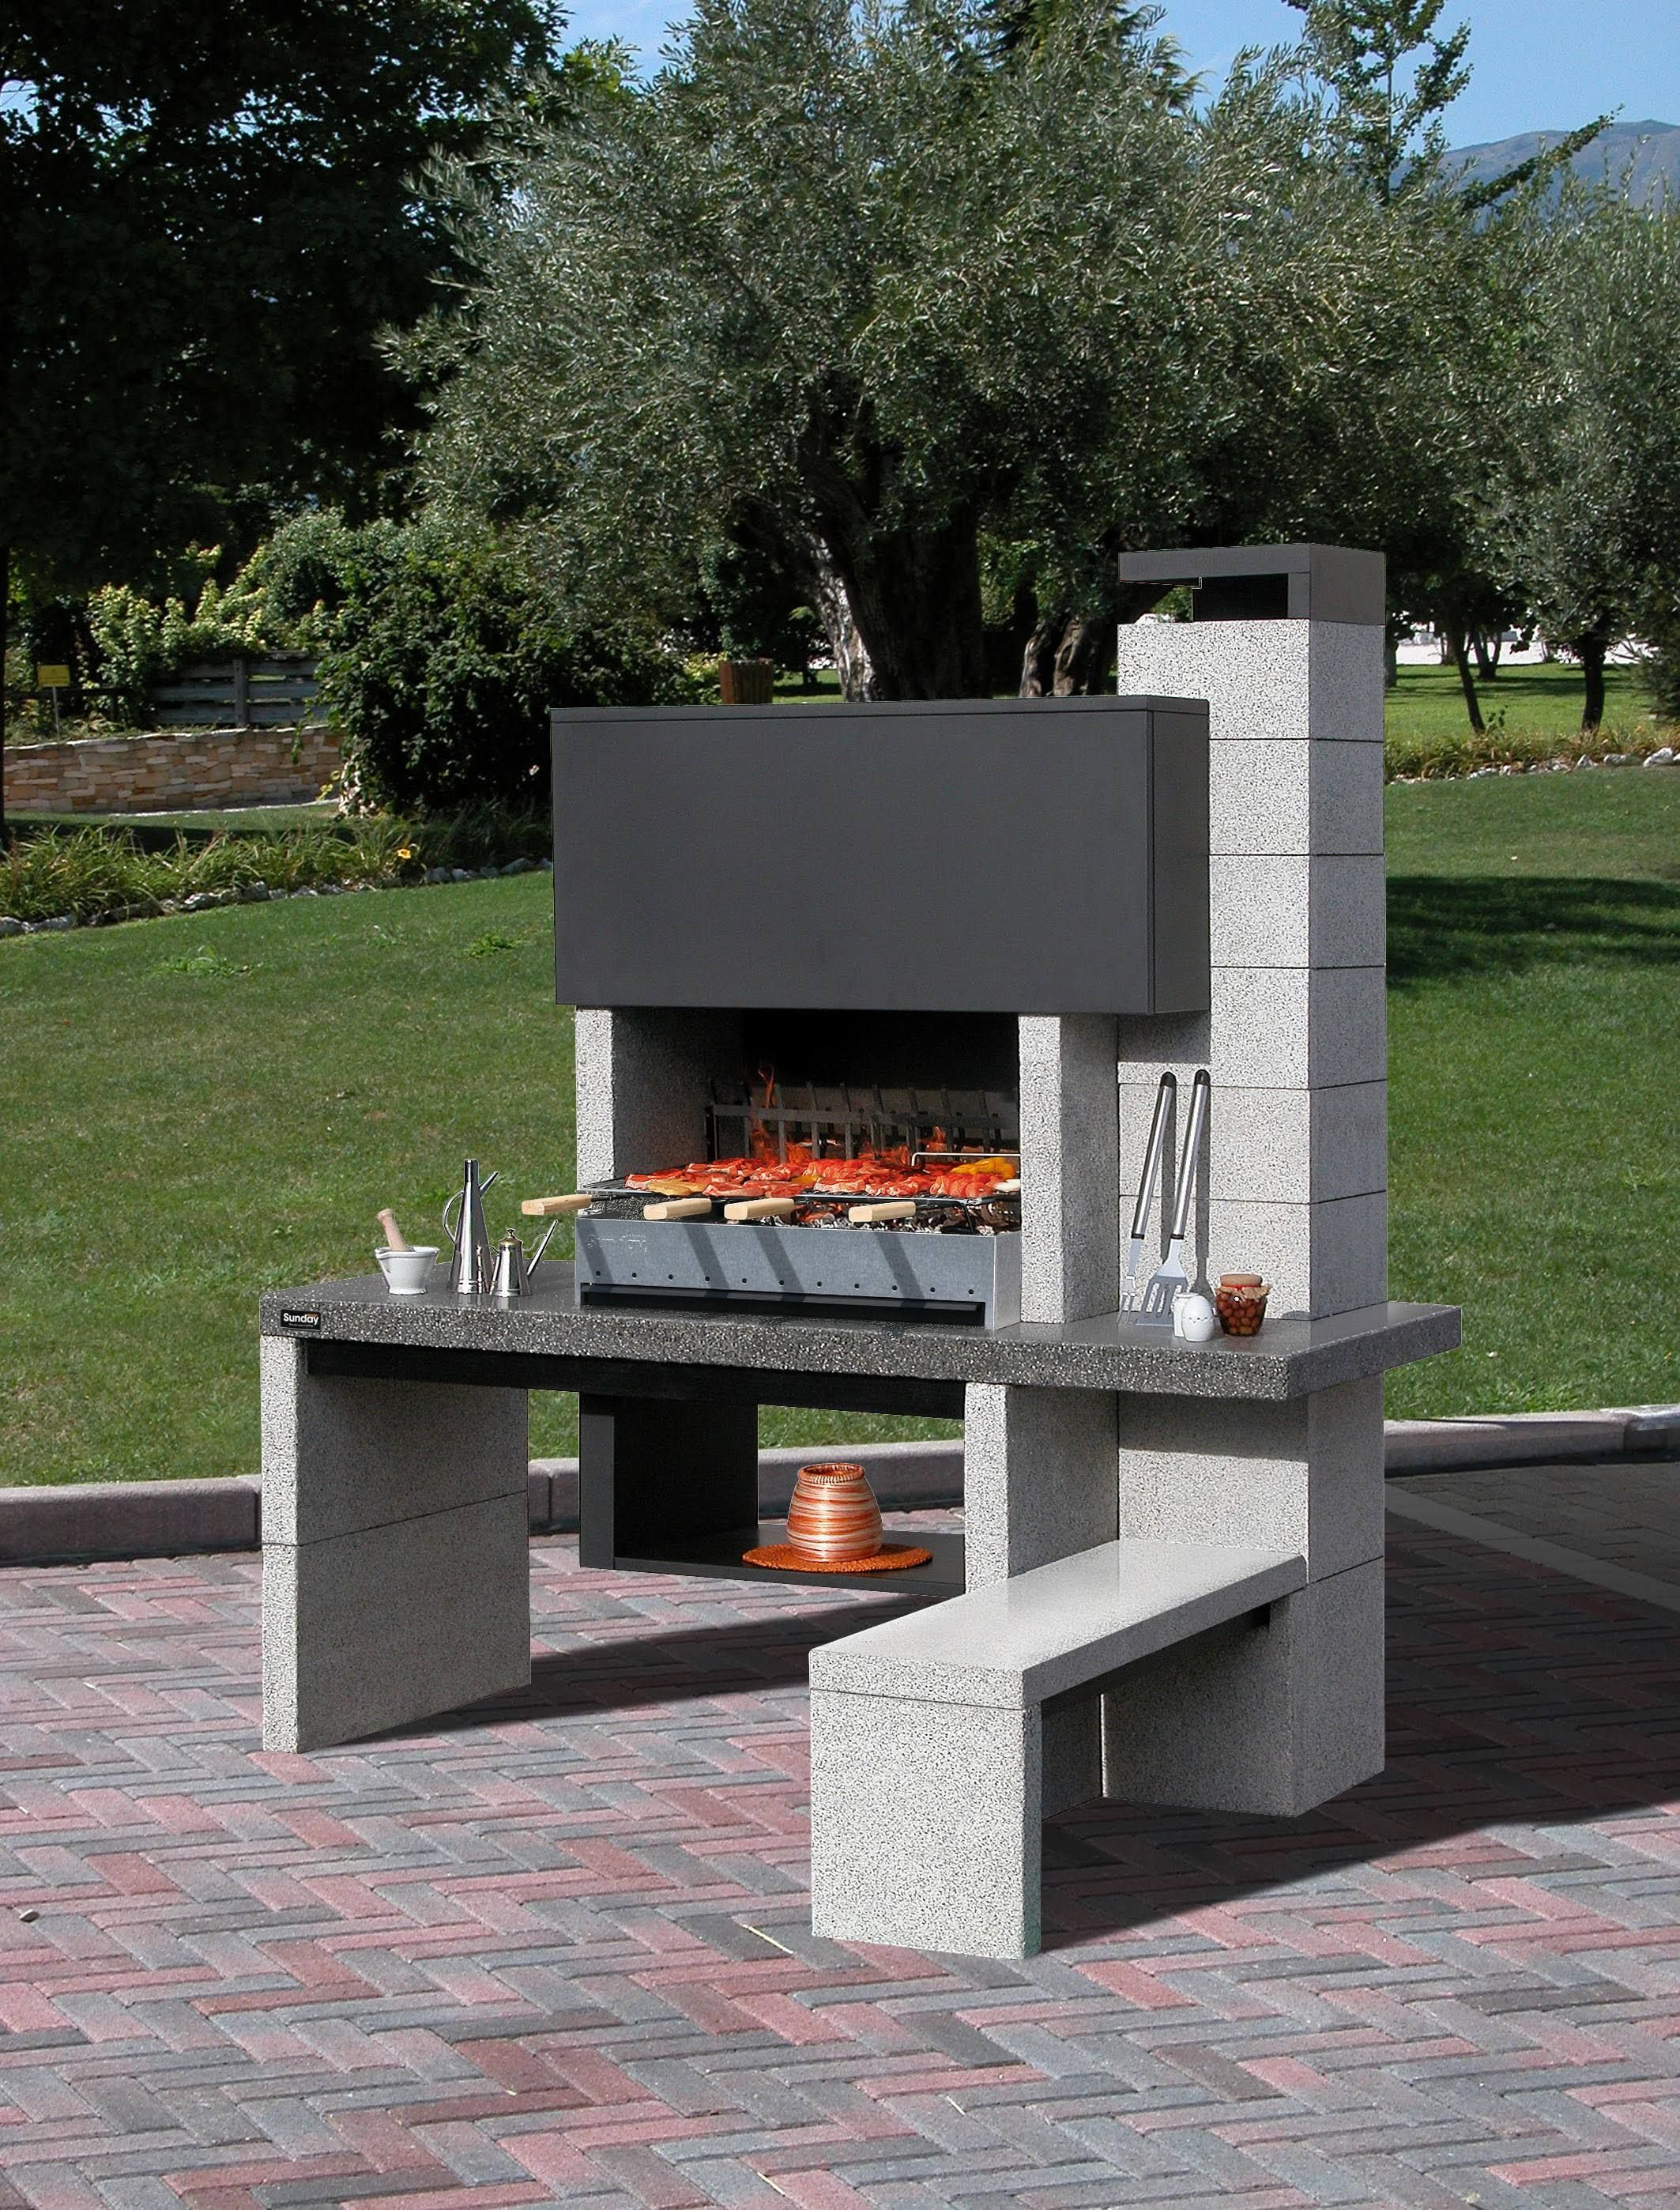 Barbecue fixe sunday new jersey terrasse pinterest for Construire un barbecue exterieur